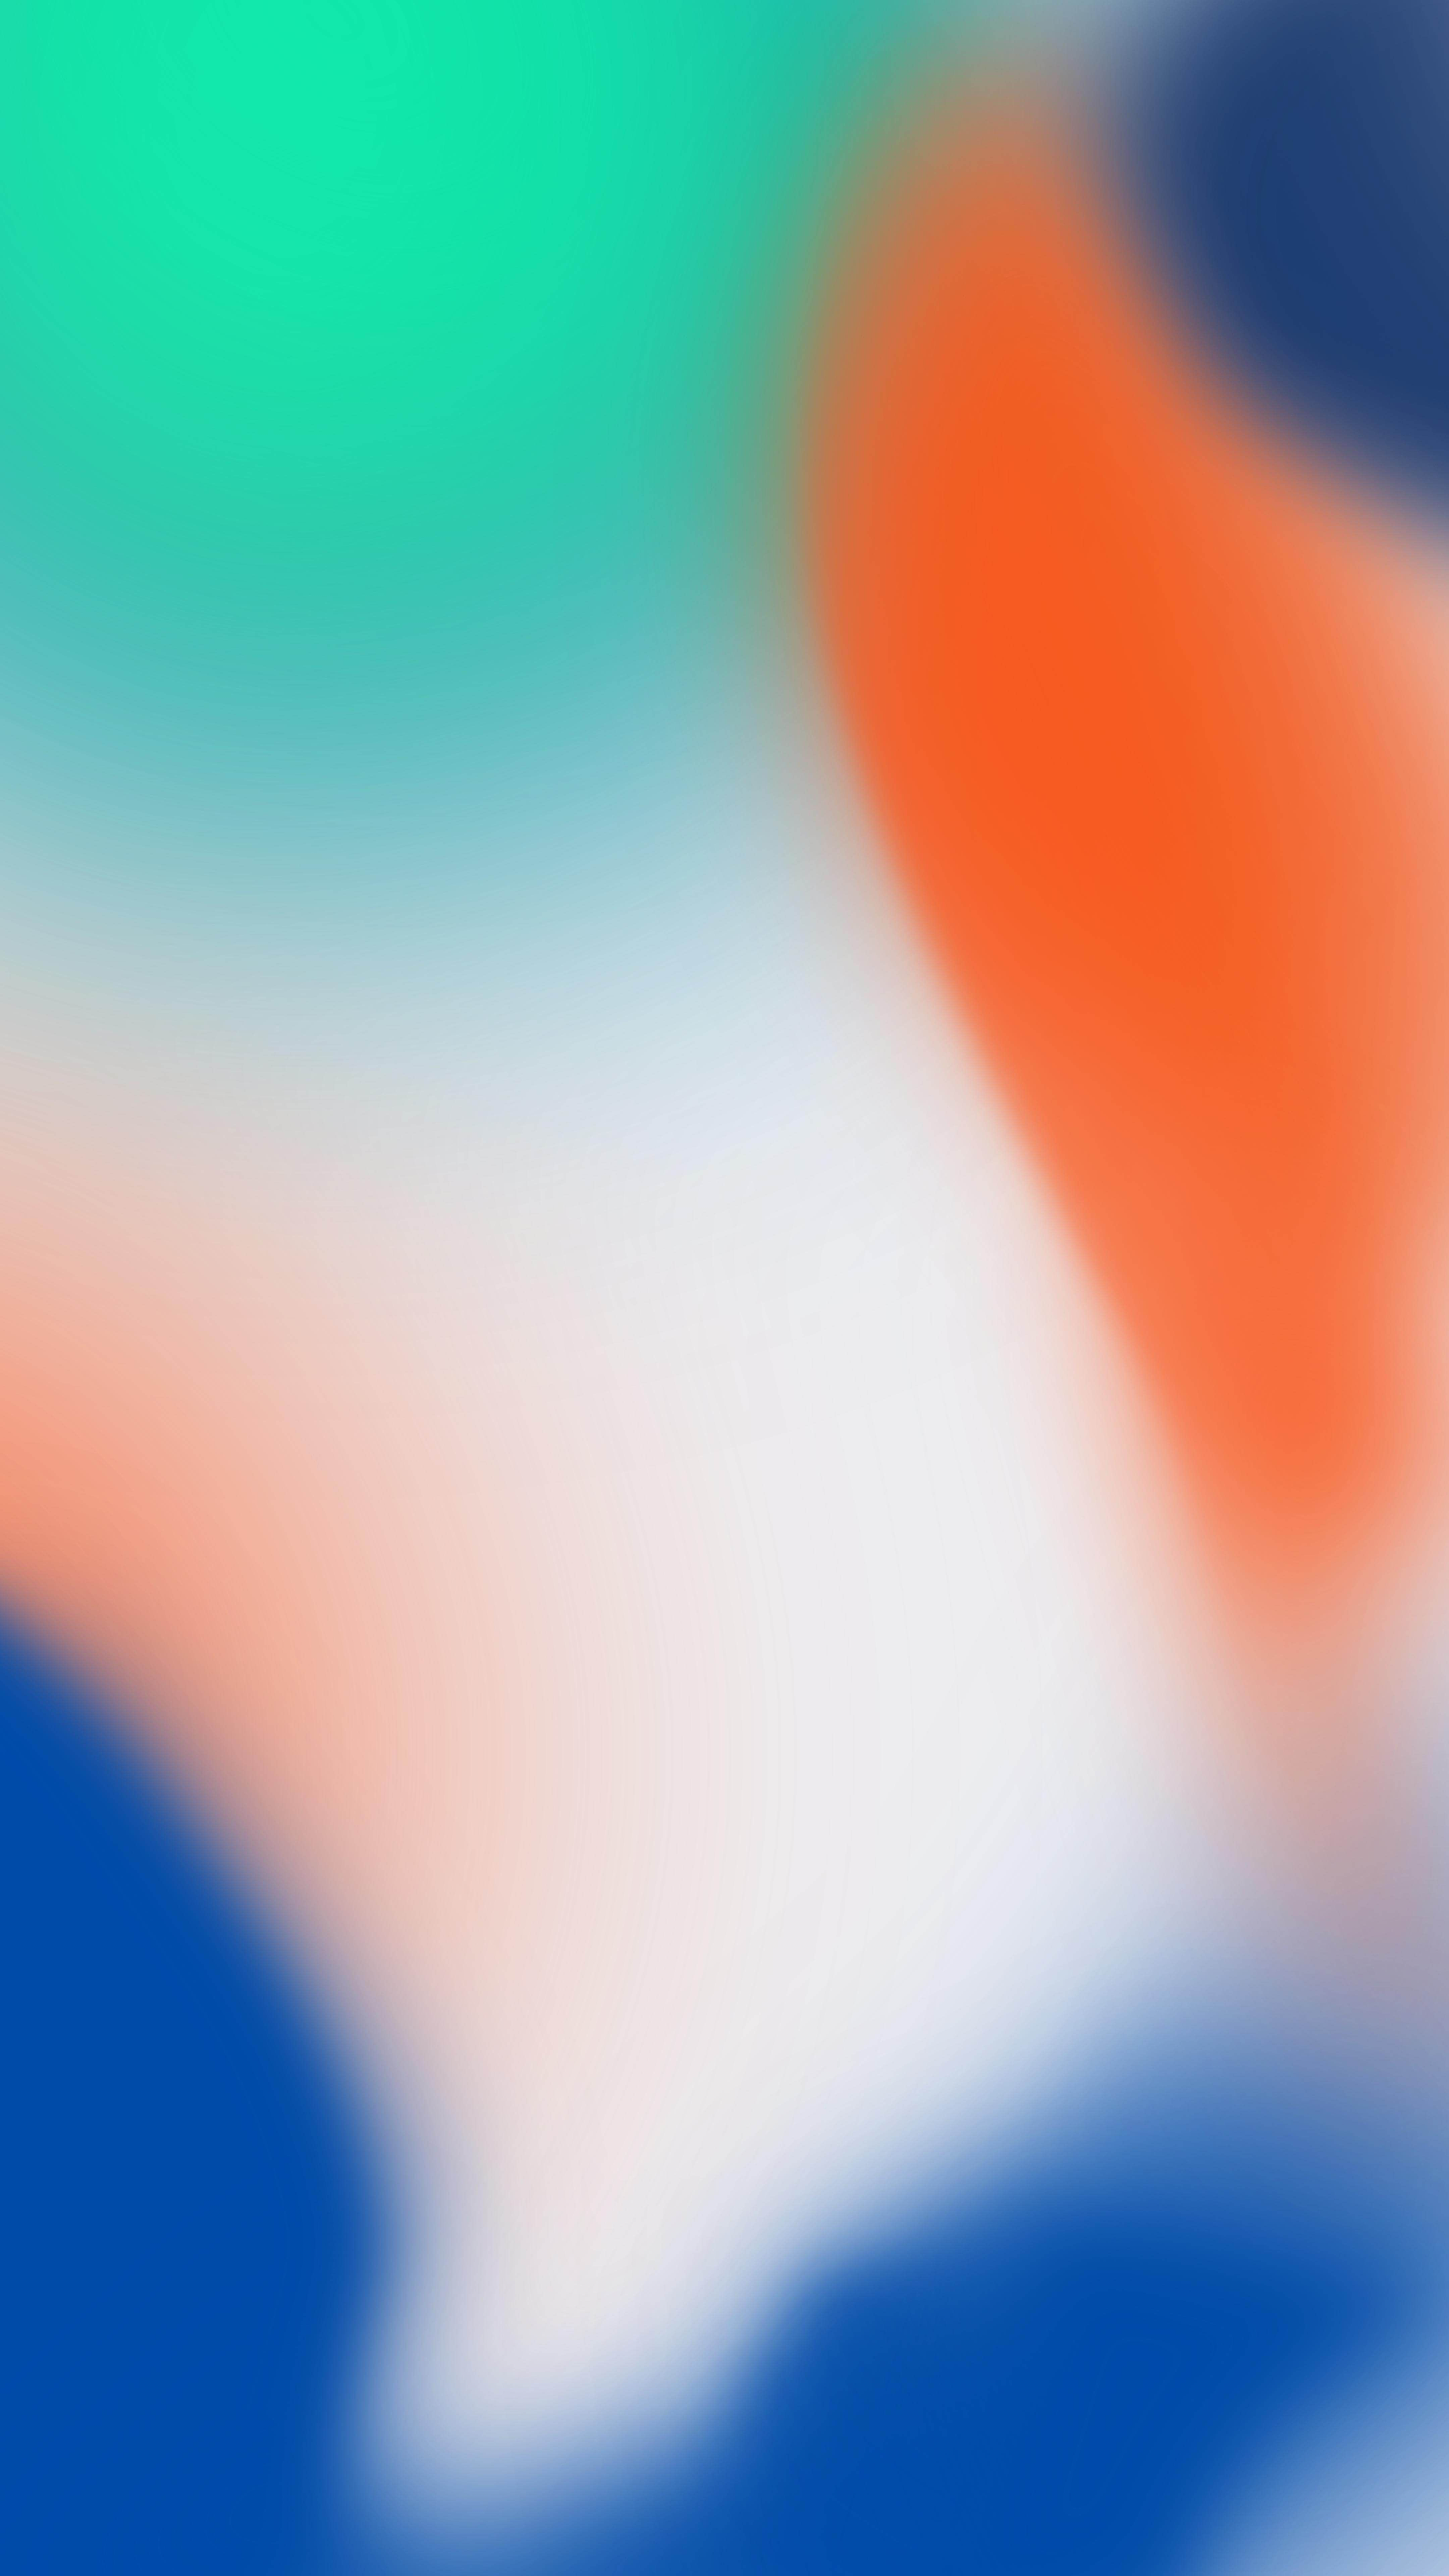 Iphone X Marketing Video Wallpapers Ioswall Iphone Wallpaper Ios Apple Wallpaper Apple Wallpaper Iphone